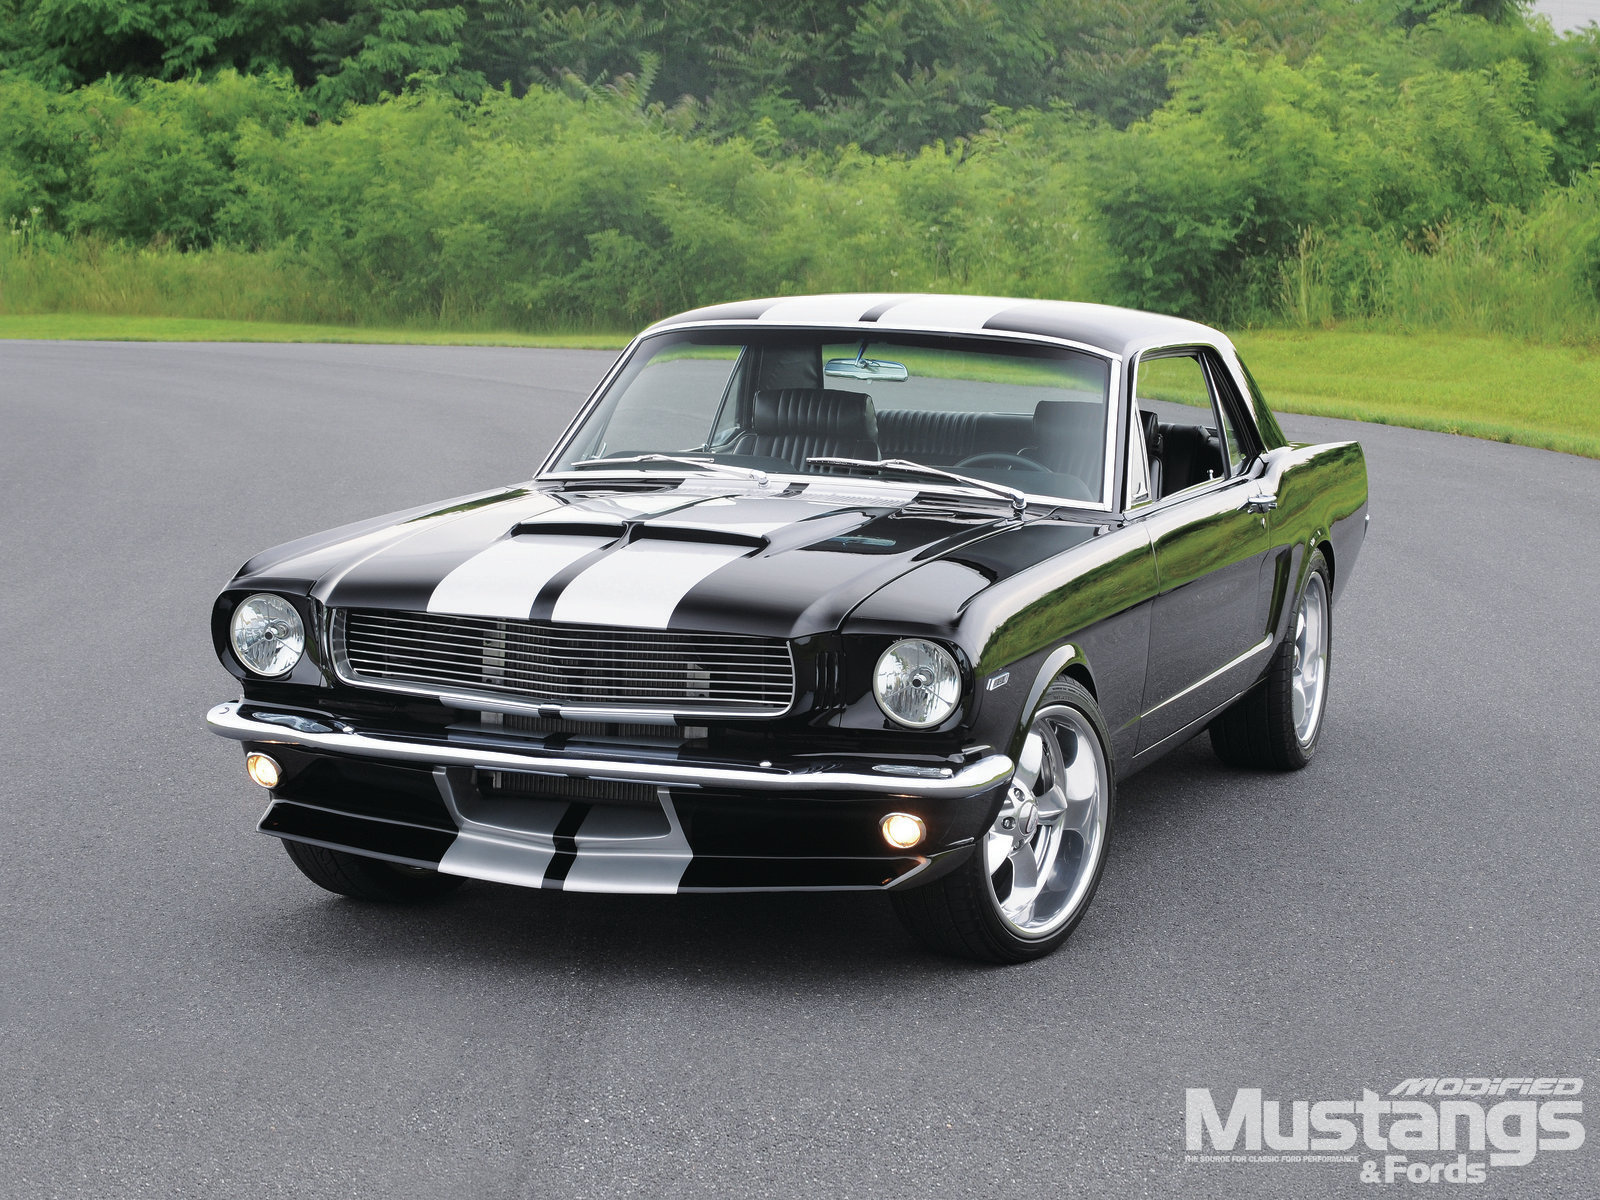 Ford mustang 1965 5